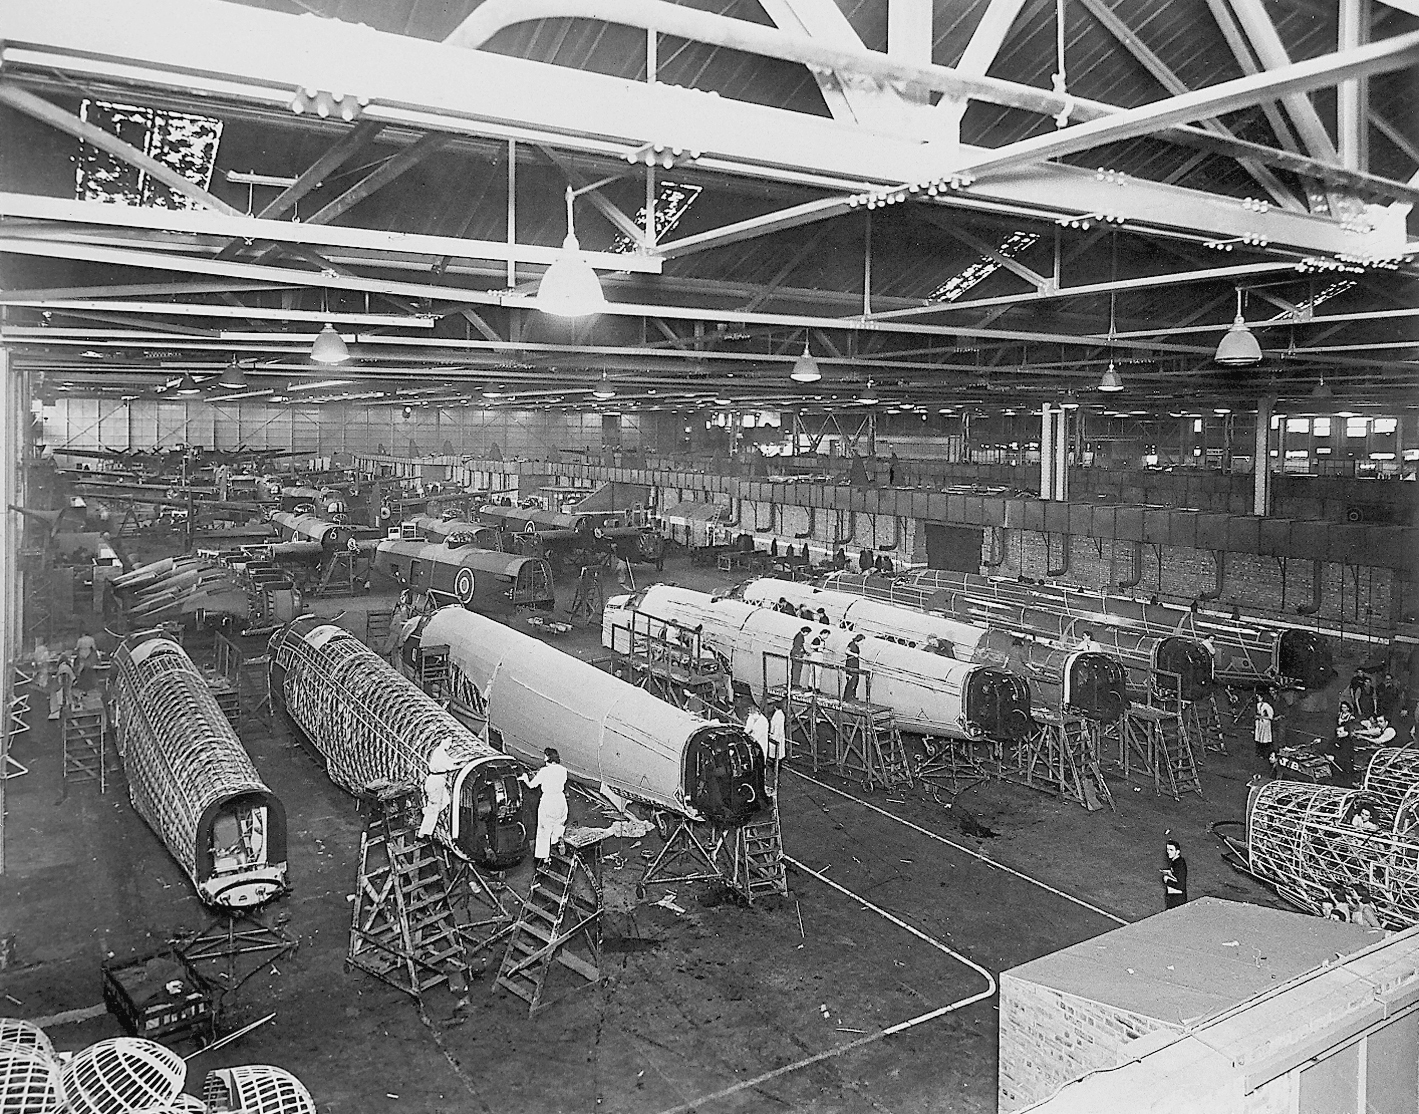 The Wellington production line at Broughton